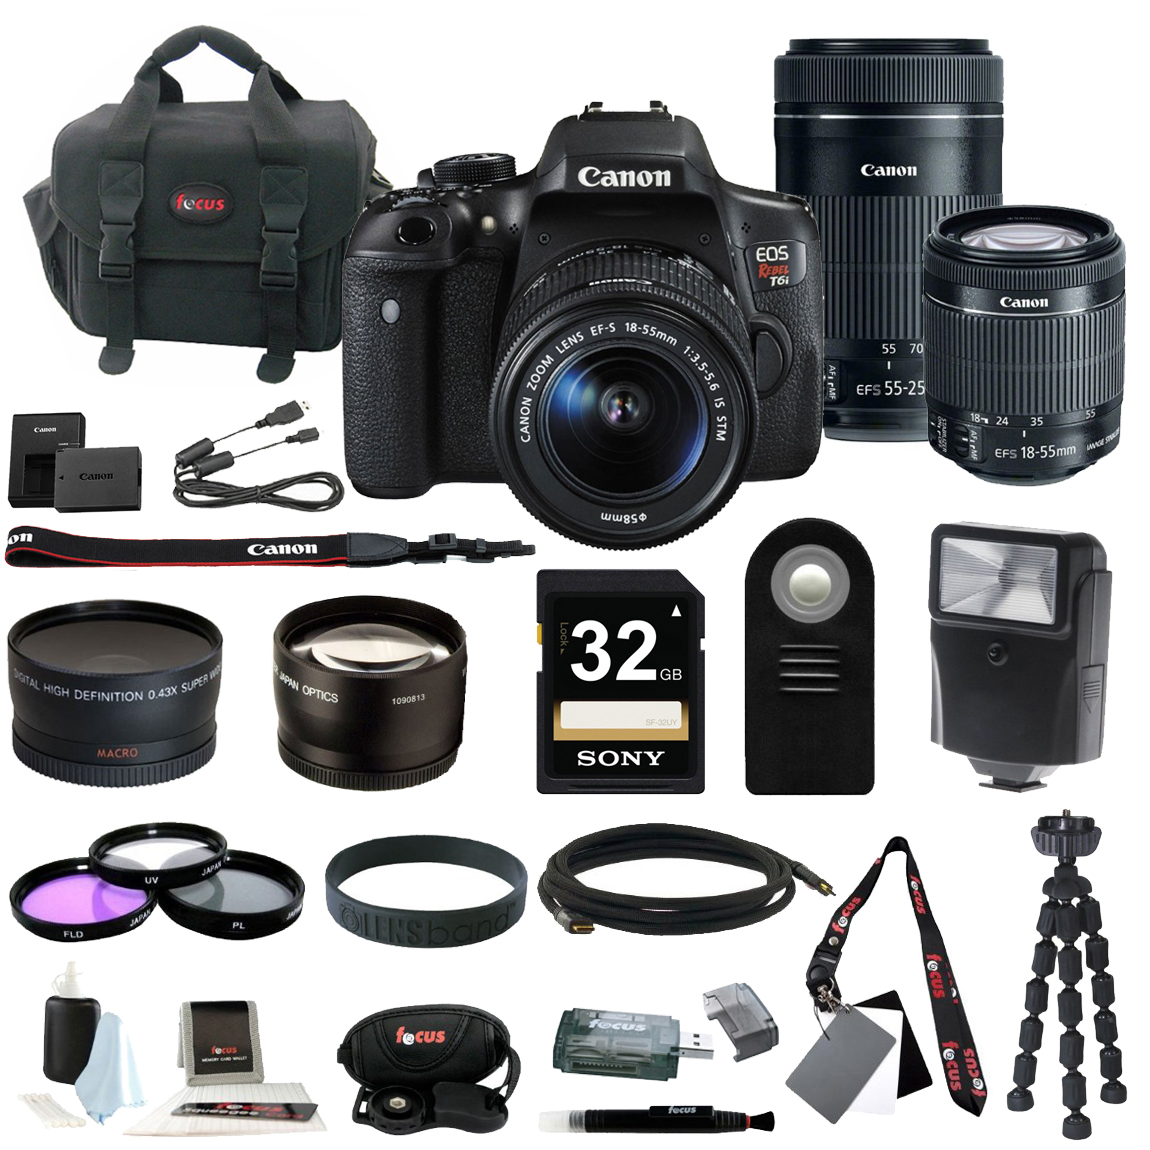 Canon EOS Rebel T6i Digital SLR with EF-S 18-55mm IS